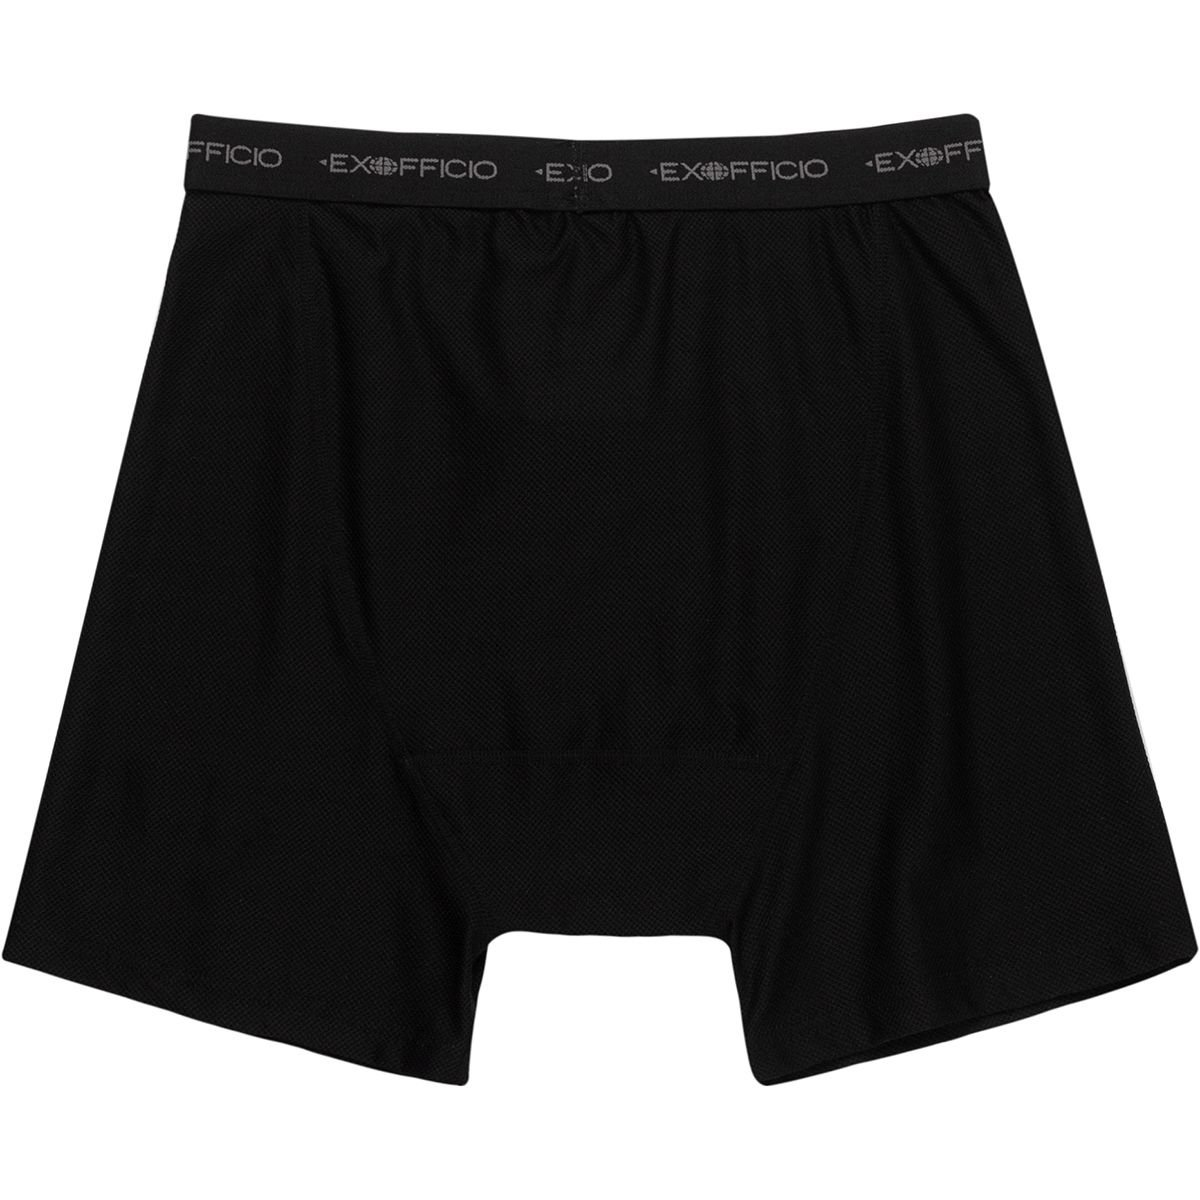 ExOfficio Give-N-Go Boxer Brief 2-Pack Mens